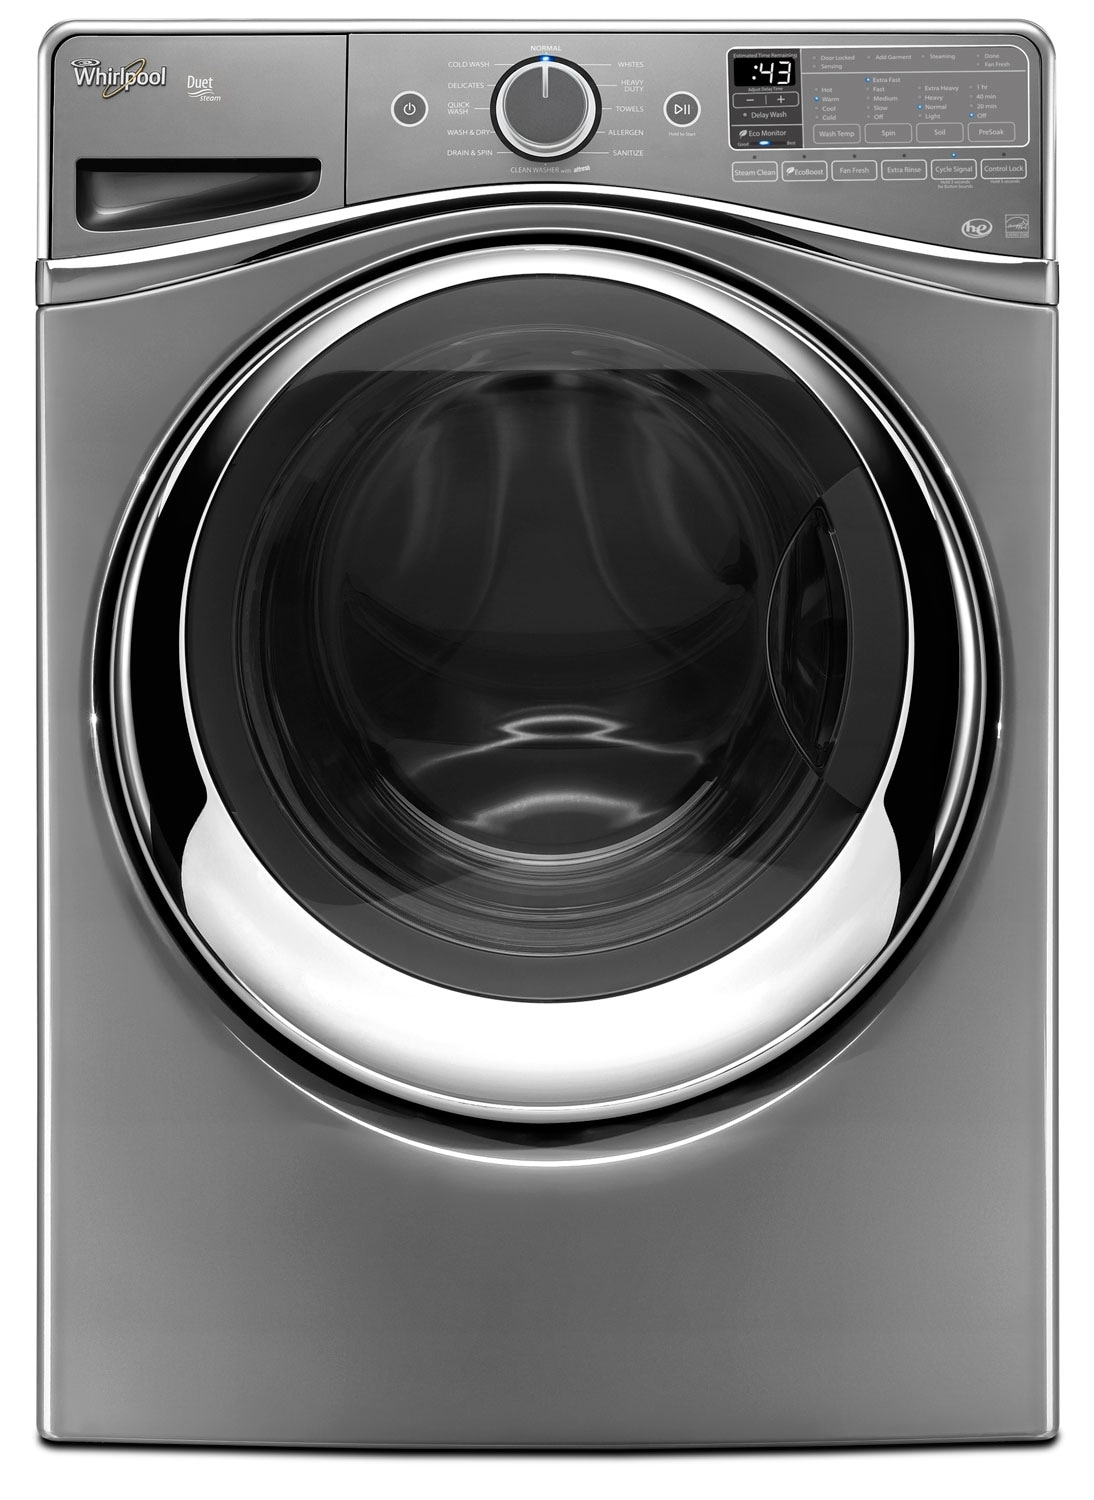 Washers and Dryers - Whirlpool Chrome Shadow Front-Load Washer (5.2 Cu. Ft. IEC) - WFW95HEDC